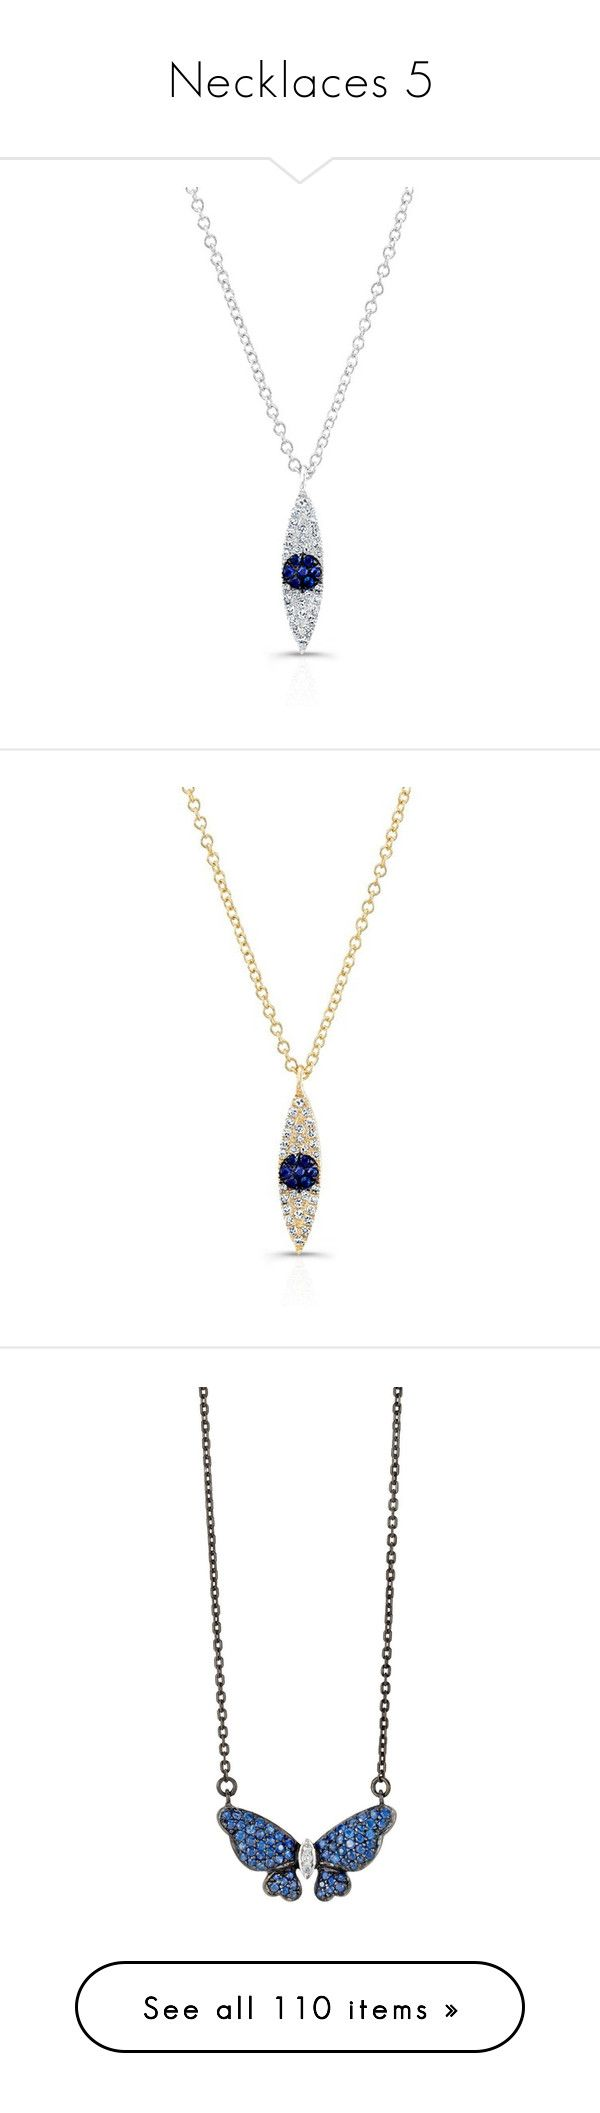 """Necklaces 5"" by valforeverblue ❤ liked on Polyvore featuring jewelry, necklaces, diamond chain necklace, white gold diamond necklace, sapphire pendant, white gold diamond pendant, white gold chain necklace, gold necklace pendant, yellow gold diamond necklace and diamond necklace pendant"